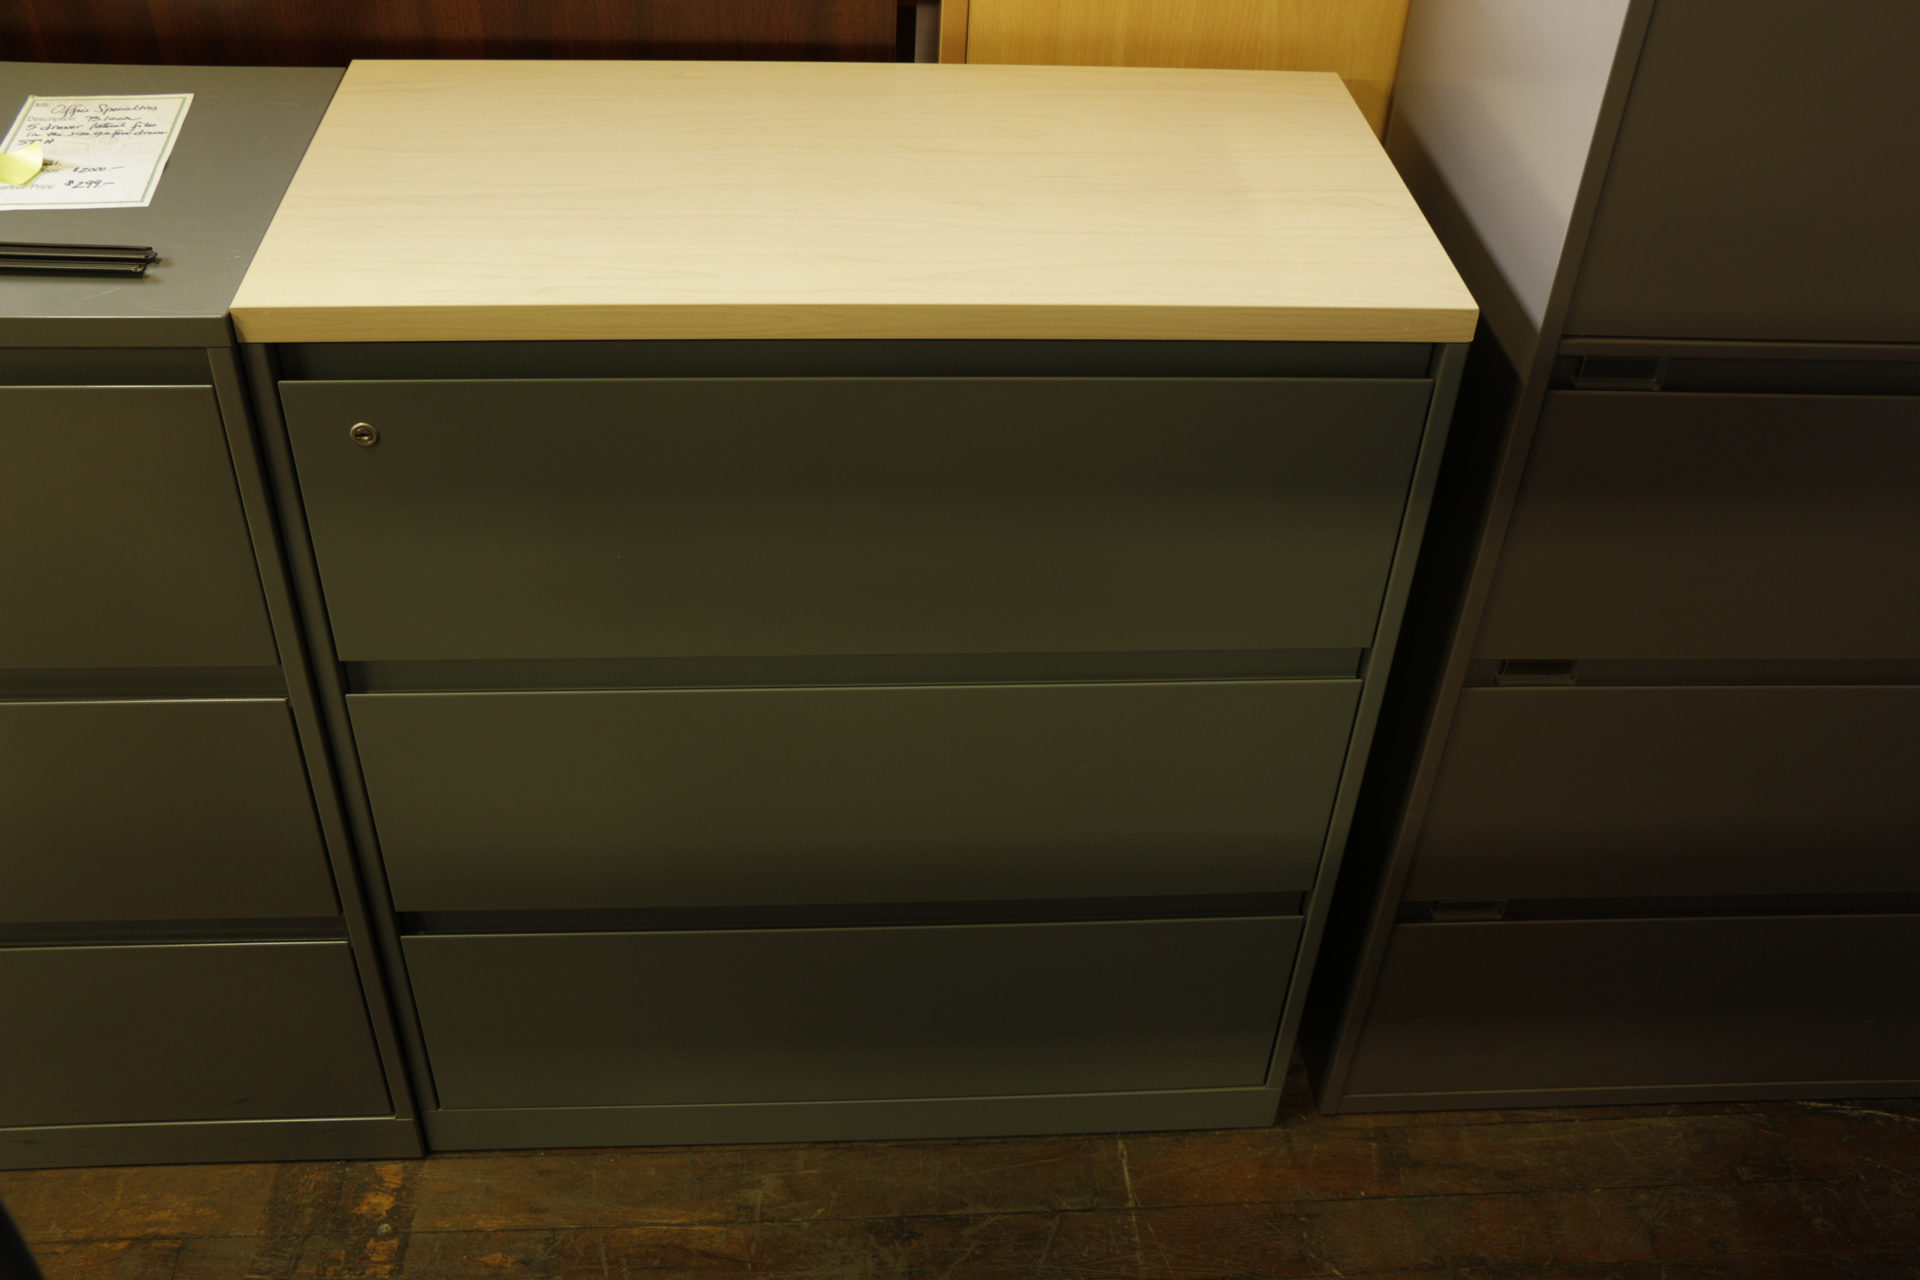 peartreeofficefurniture_peartreeofficefurniture_mg_1805.jpg